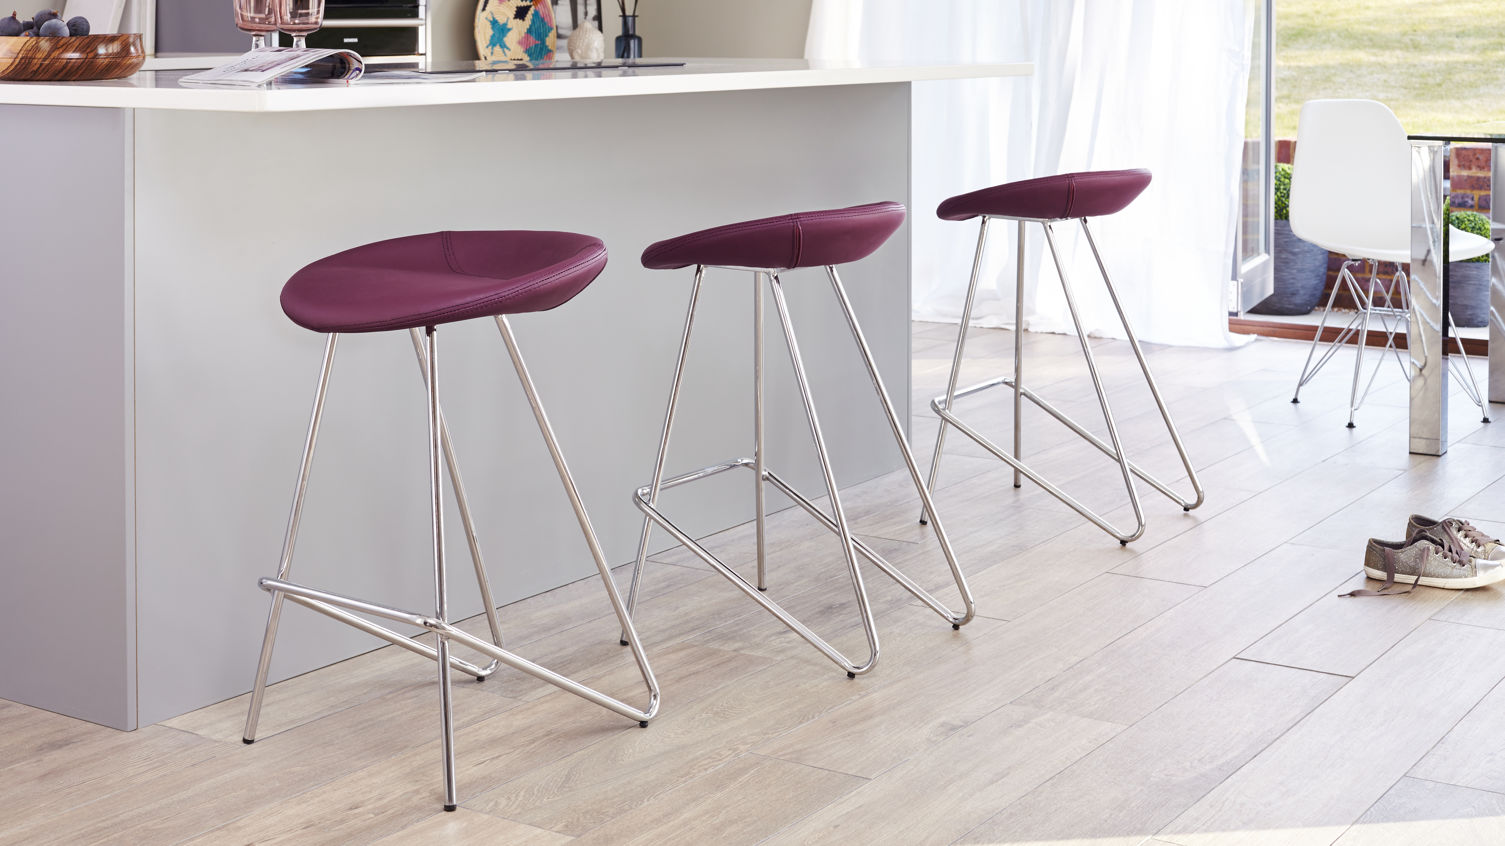 Anzio Modern Bar Stool in mulberry purple Danetti